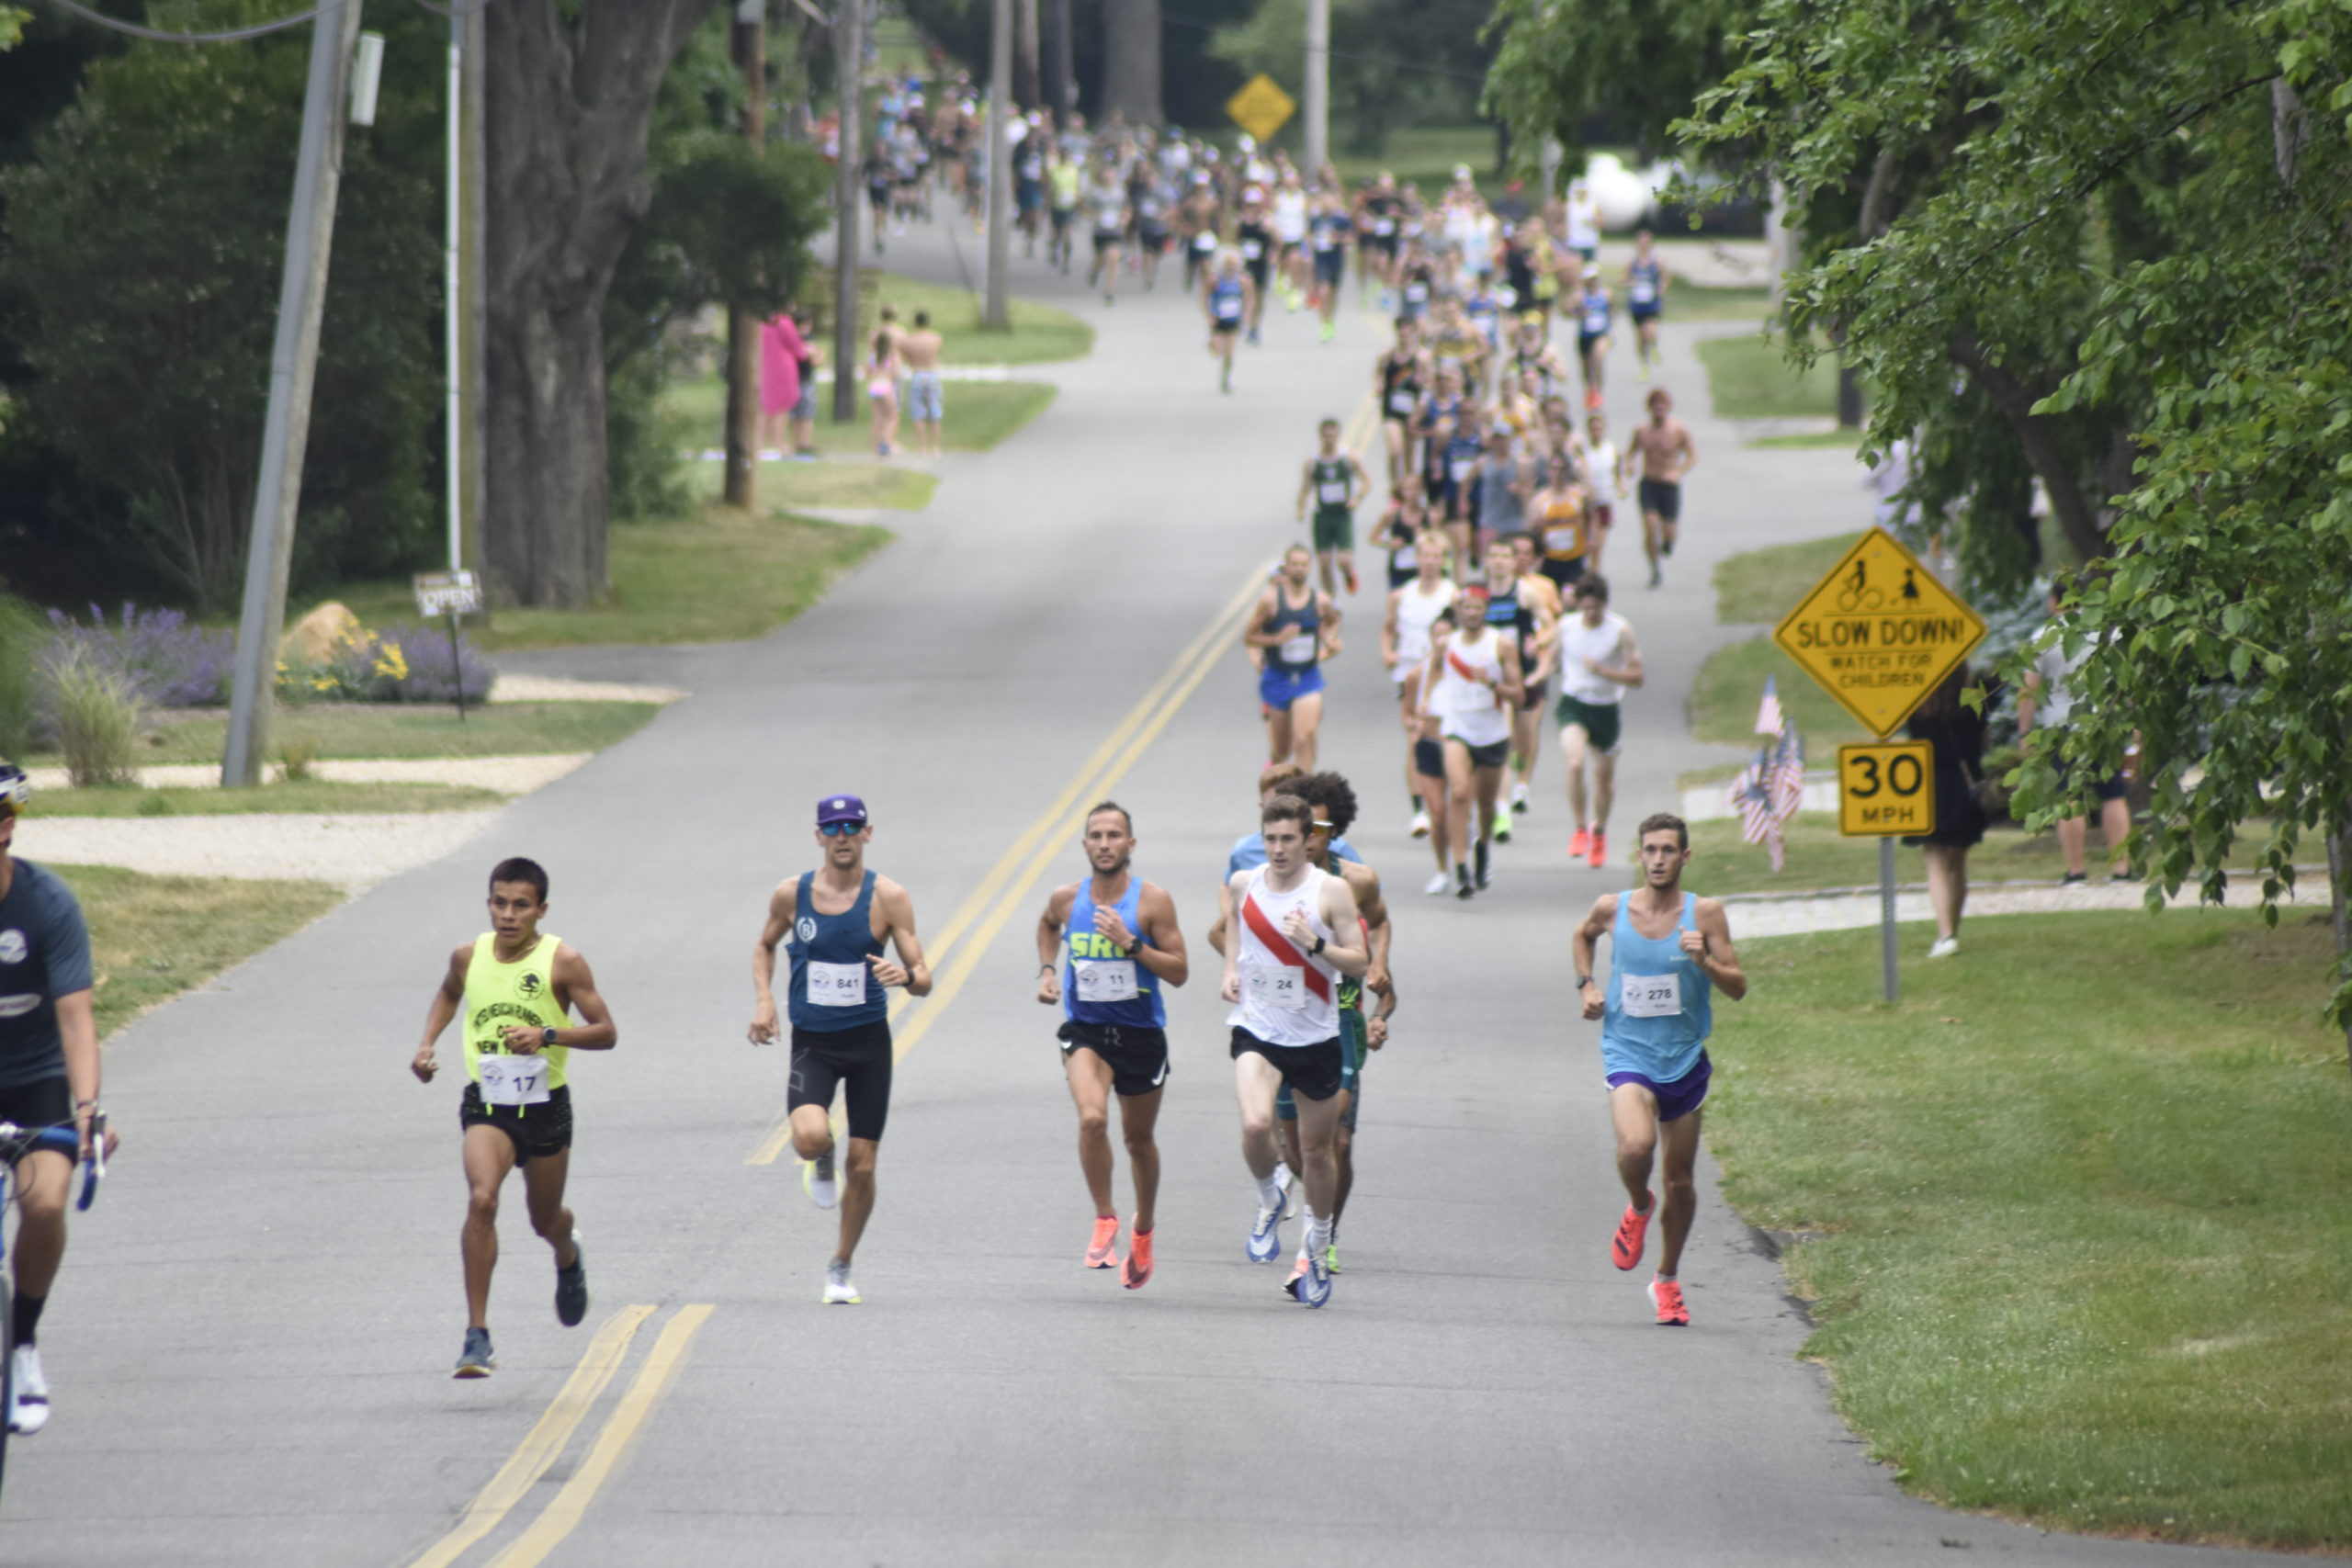 After having just a virtual race last year due to the pandemic, the 42nd annual Shelter Island 10K was done both live and virtually, with around 1,000 runners making the trip to compete on Saturday.